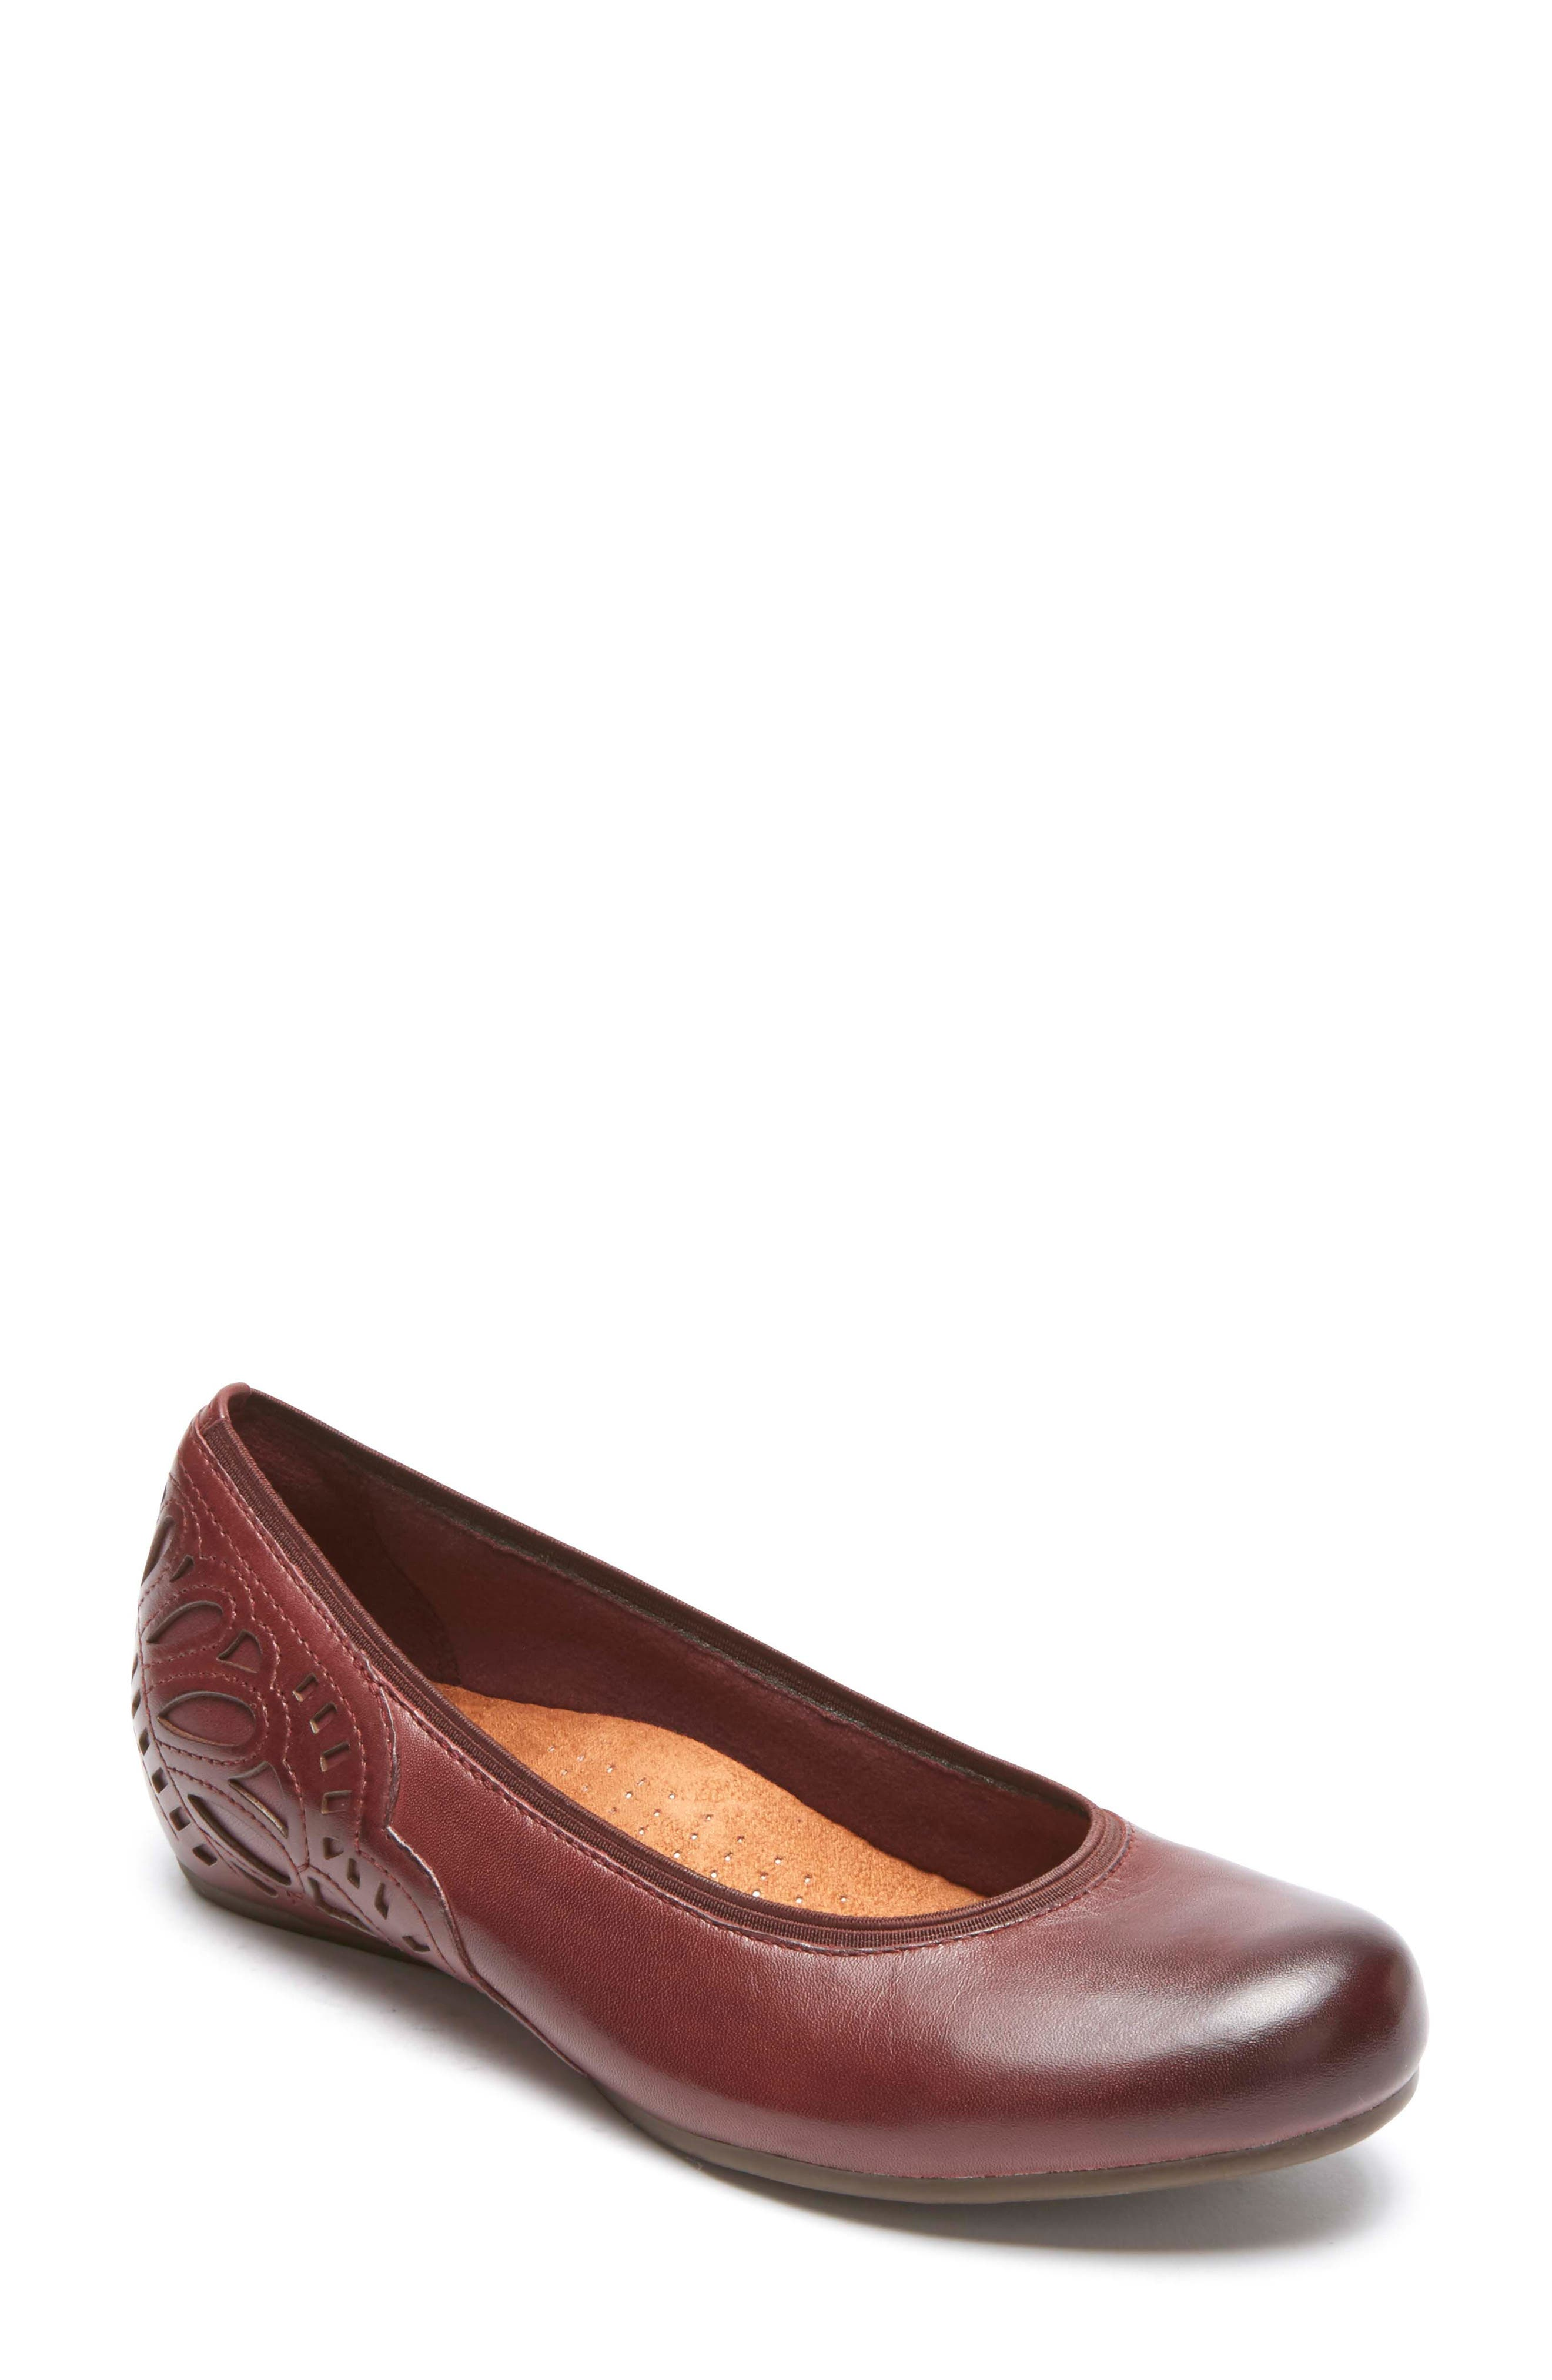 Sharleen Wedge Pump,                         Main,                         color, MERLOT LEATHER